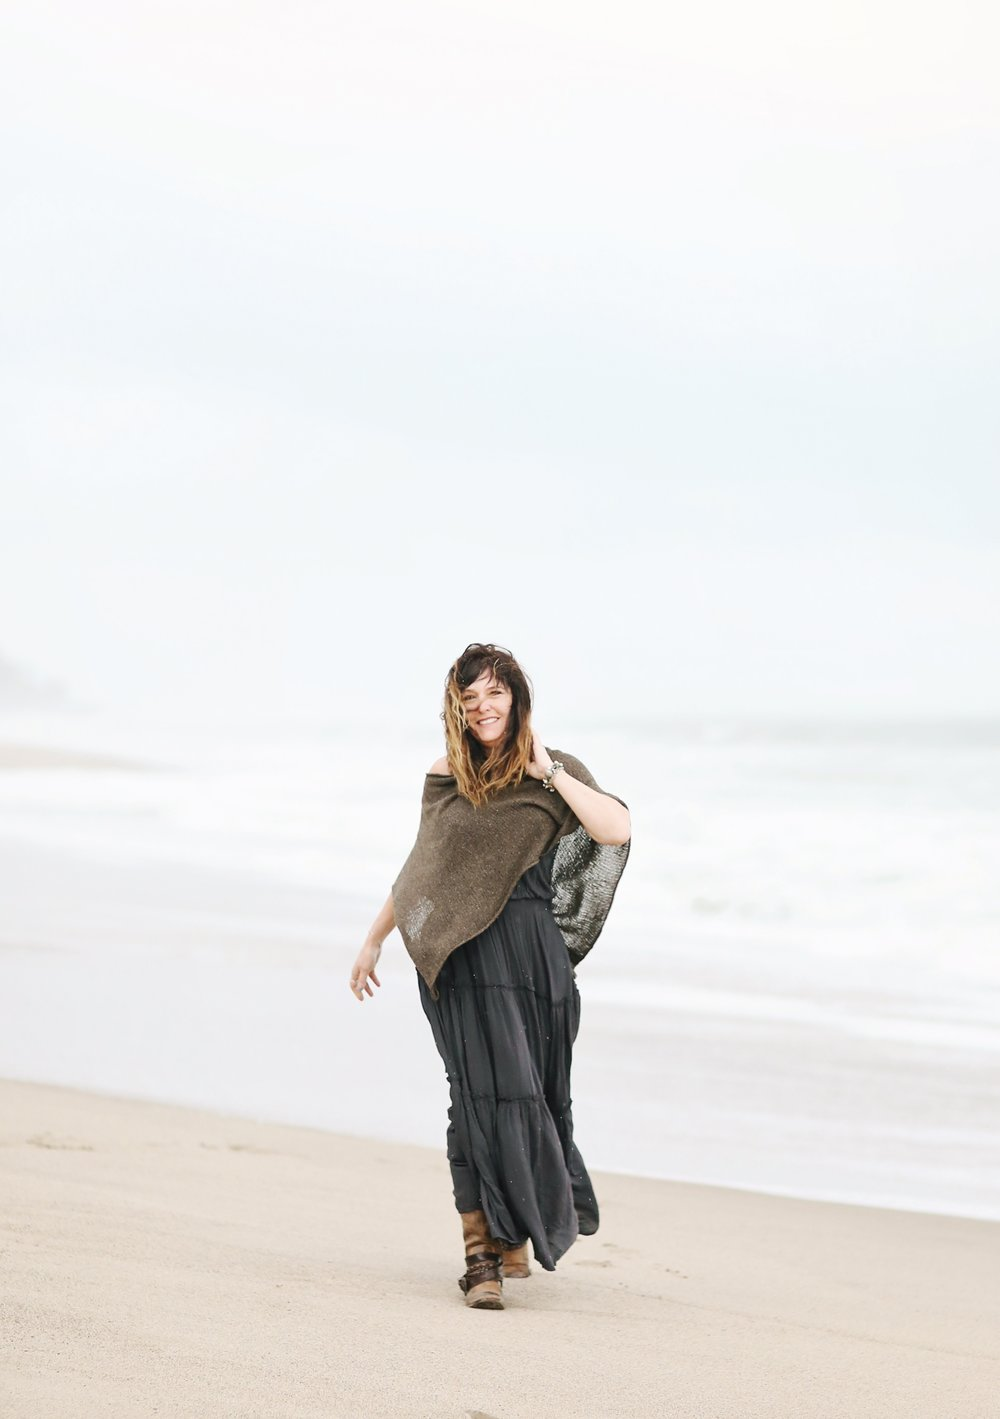 Fine art image of woman walking on the beach in the breeze.  Beach portrait.